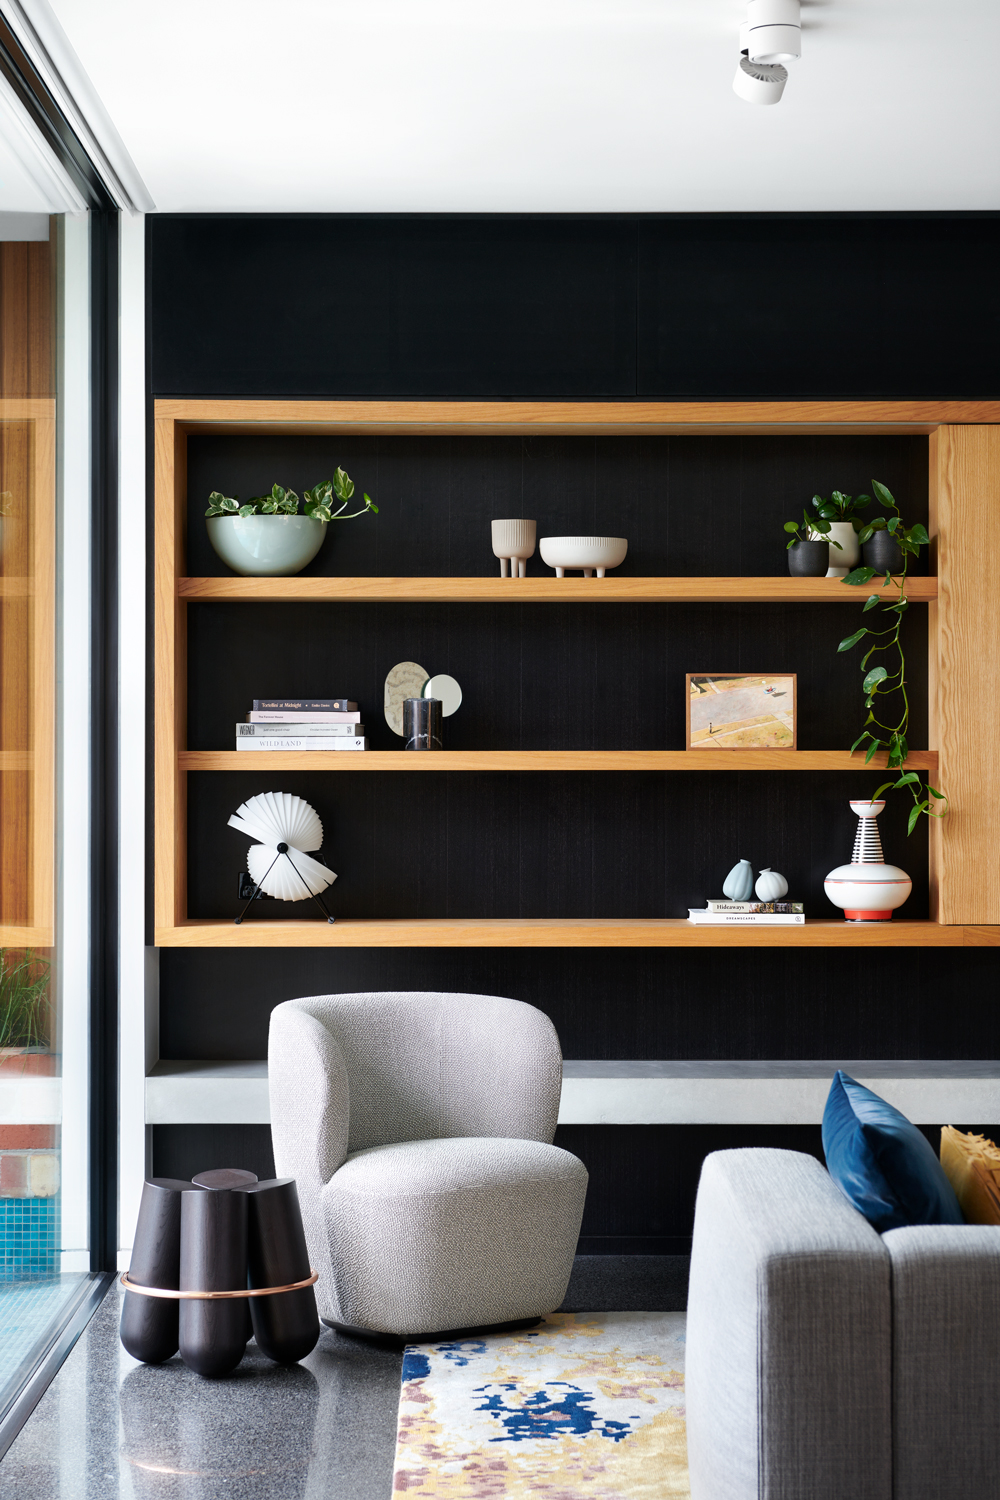 An open-plan lounge with open shelves made of natural timber.